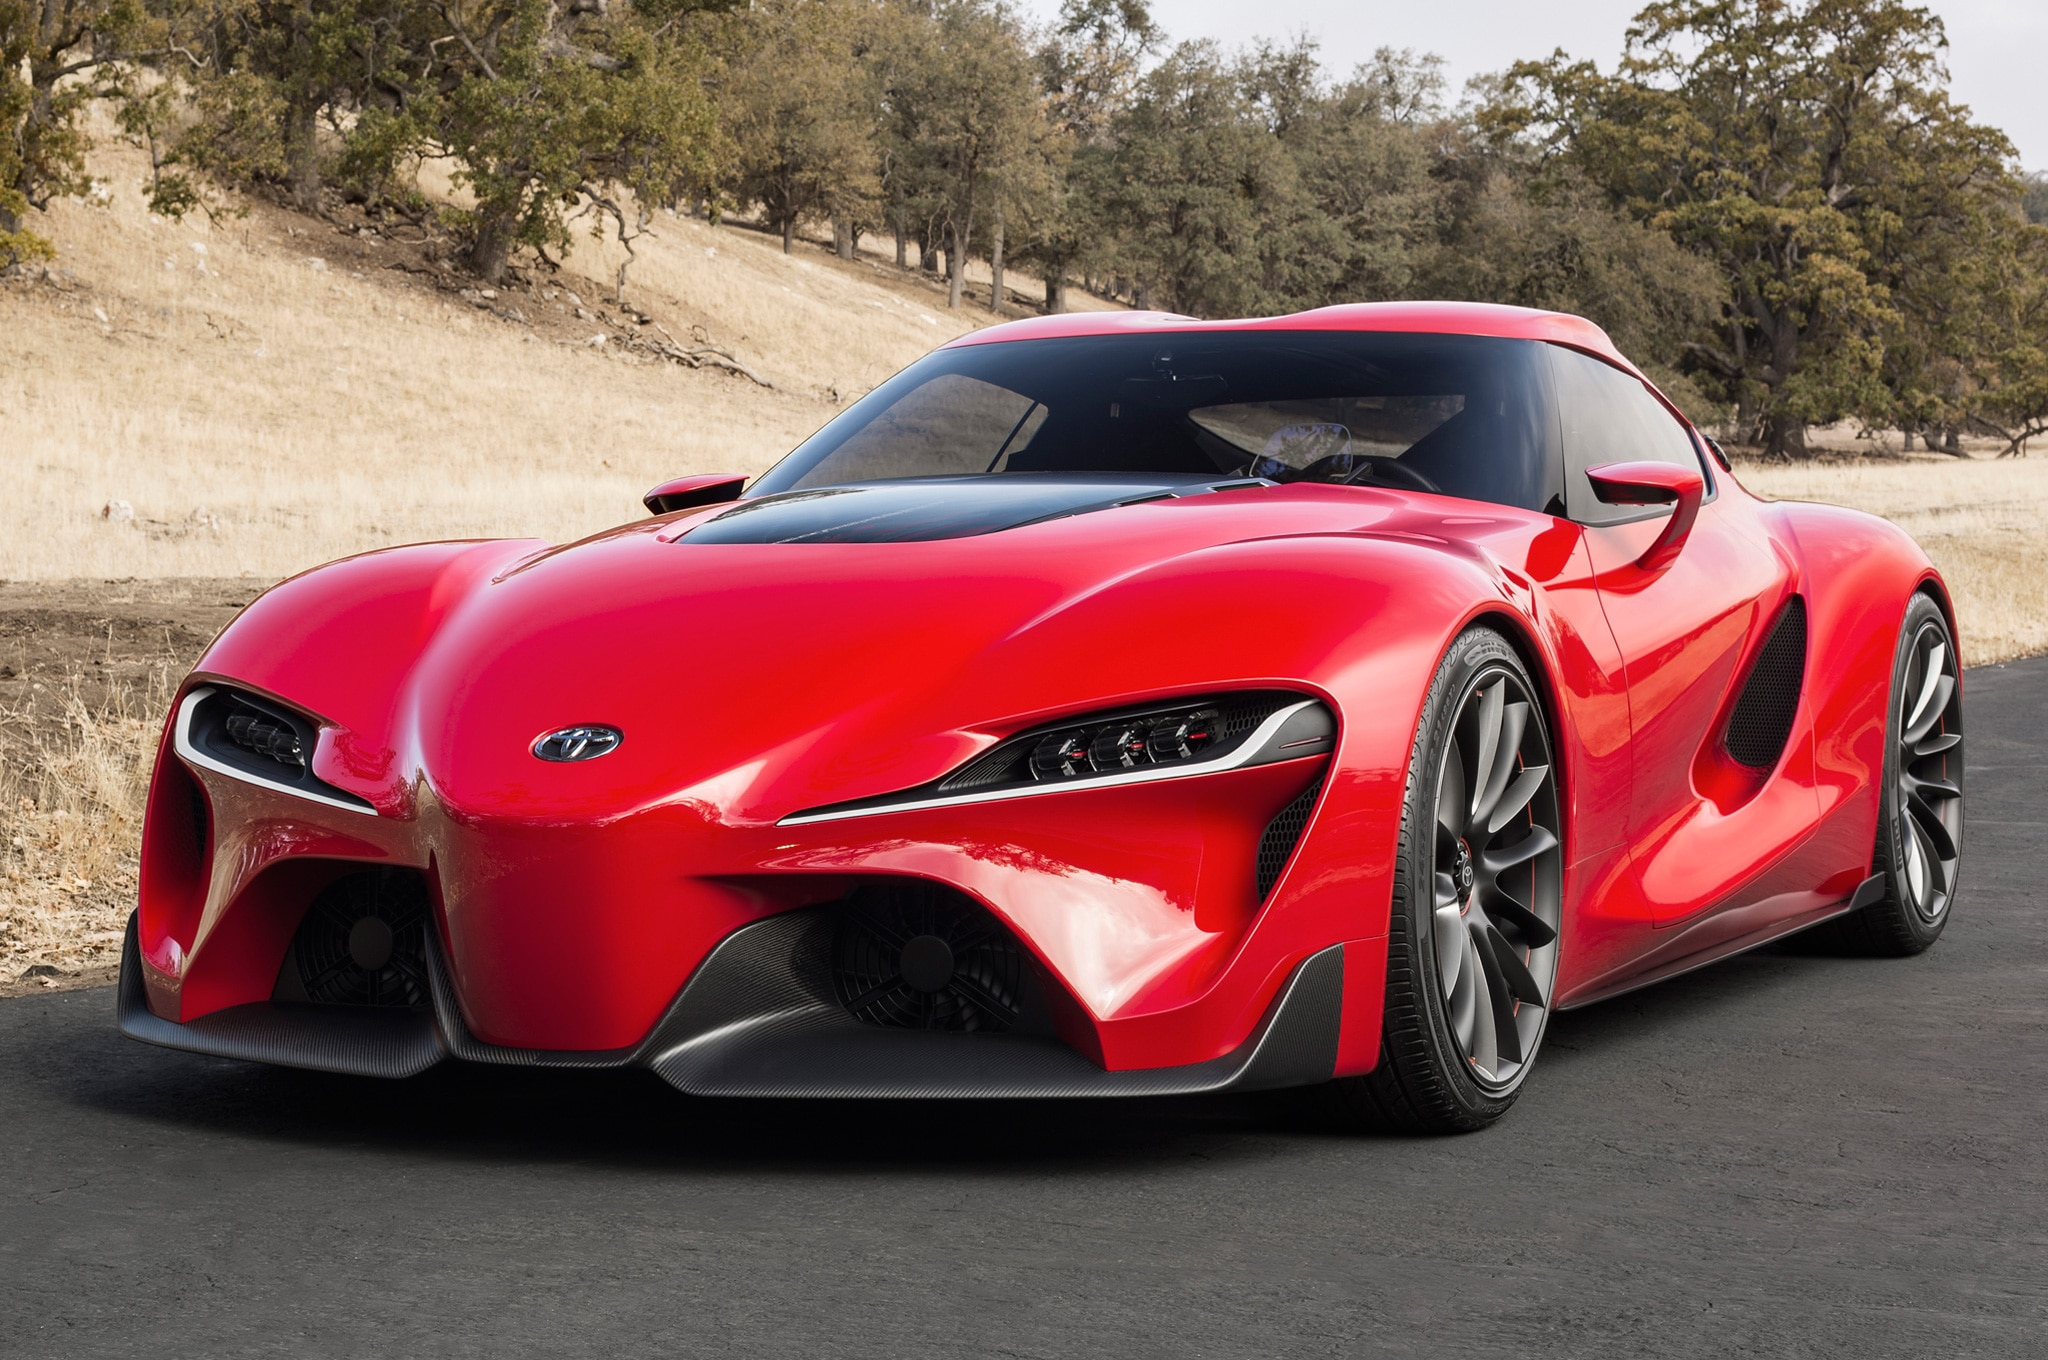 Toyota FT 1 Concept Front Three Quarters View On Road1